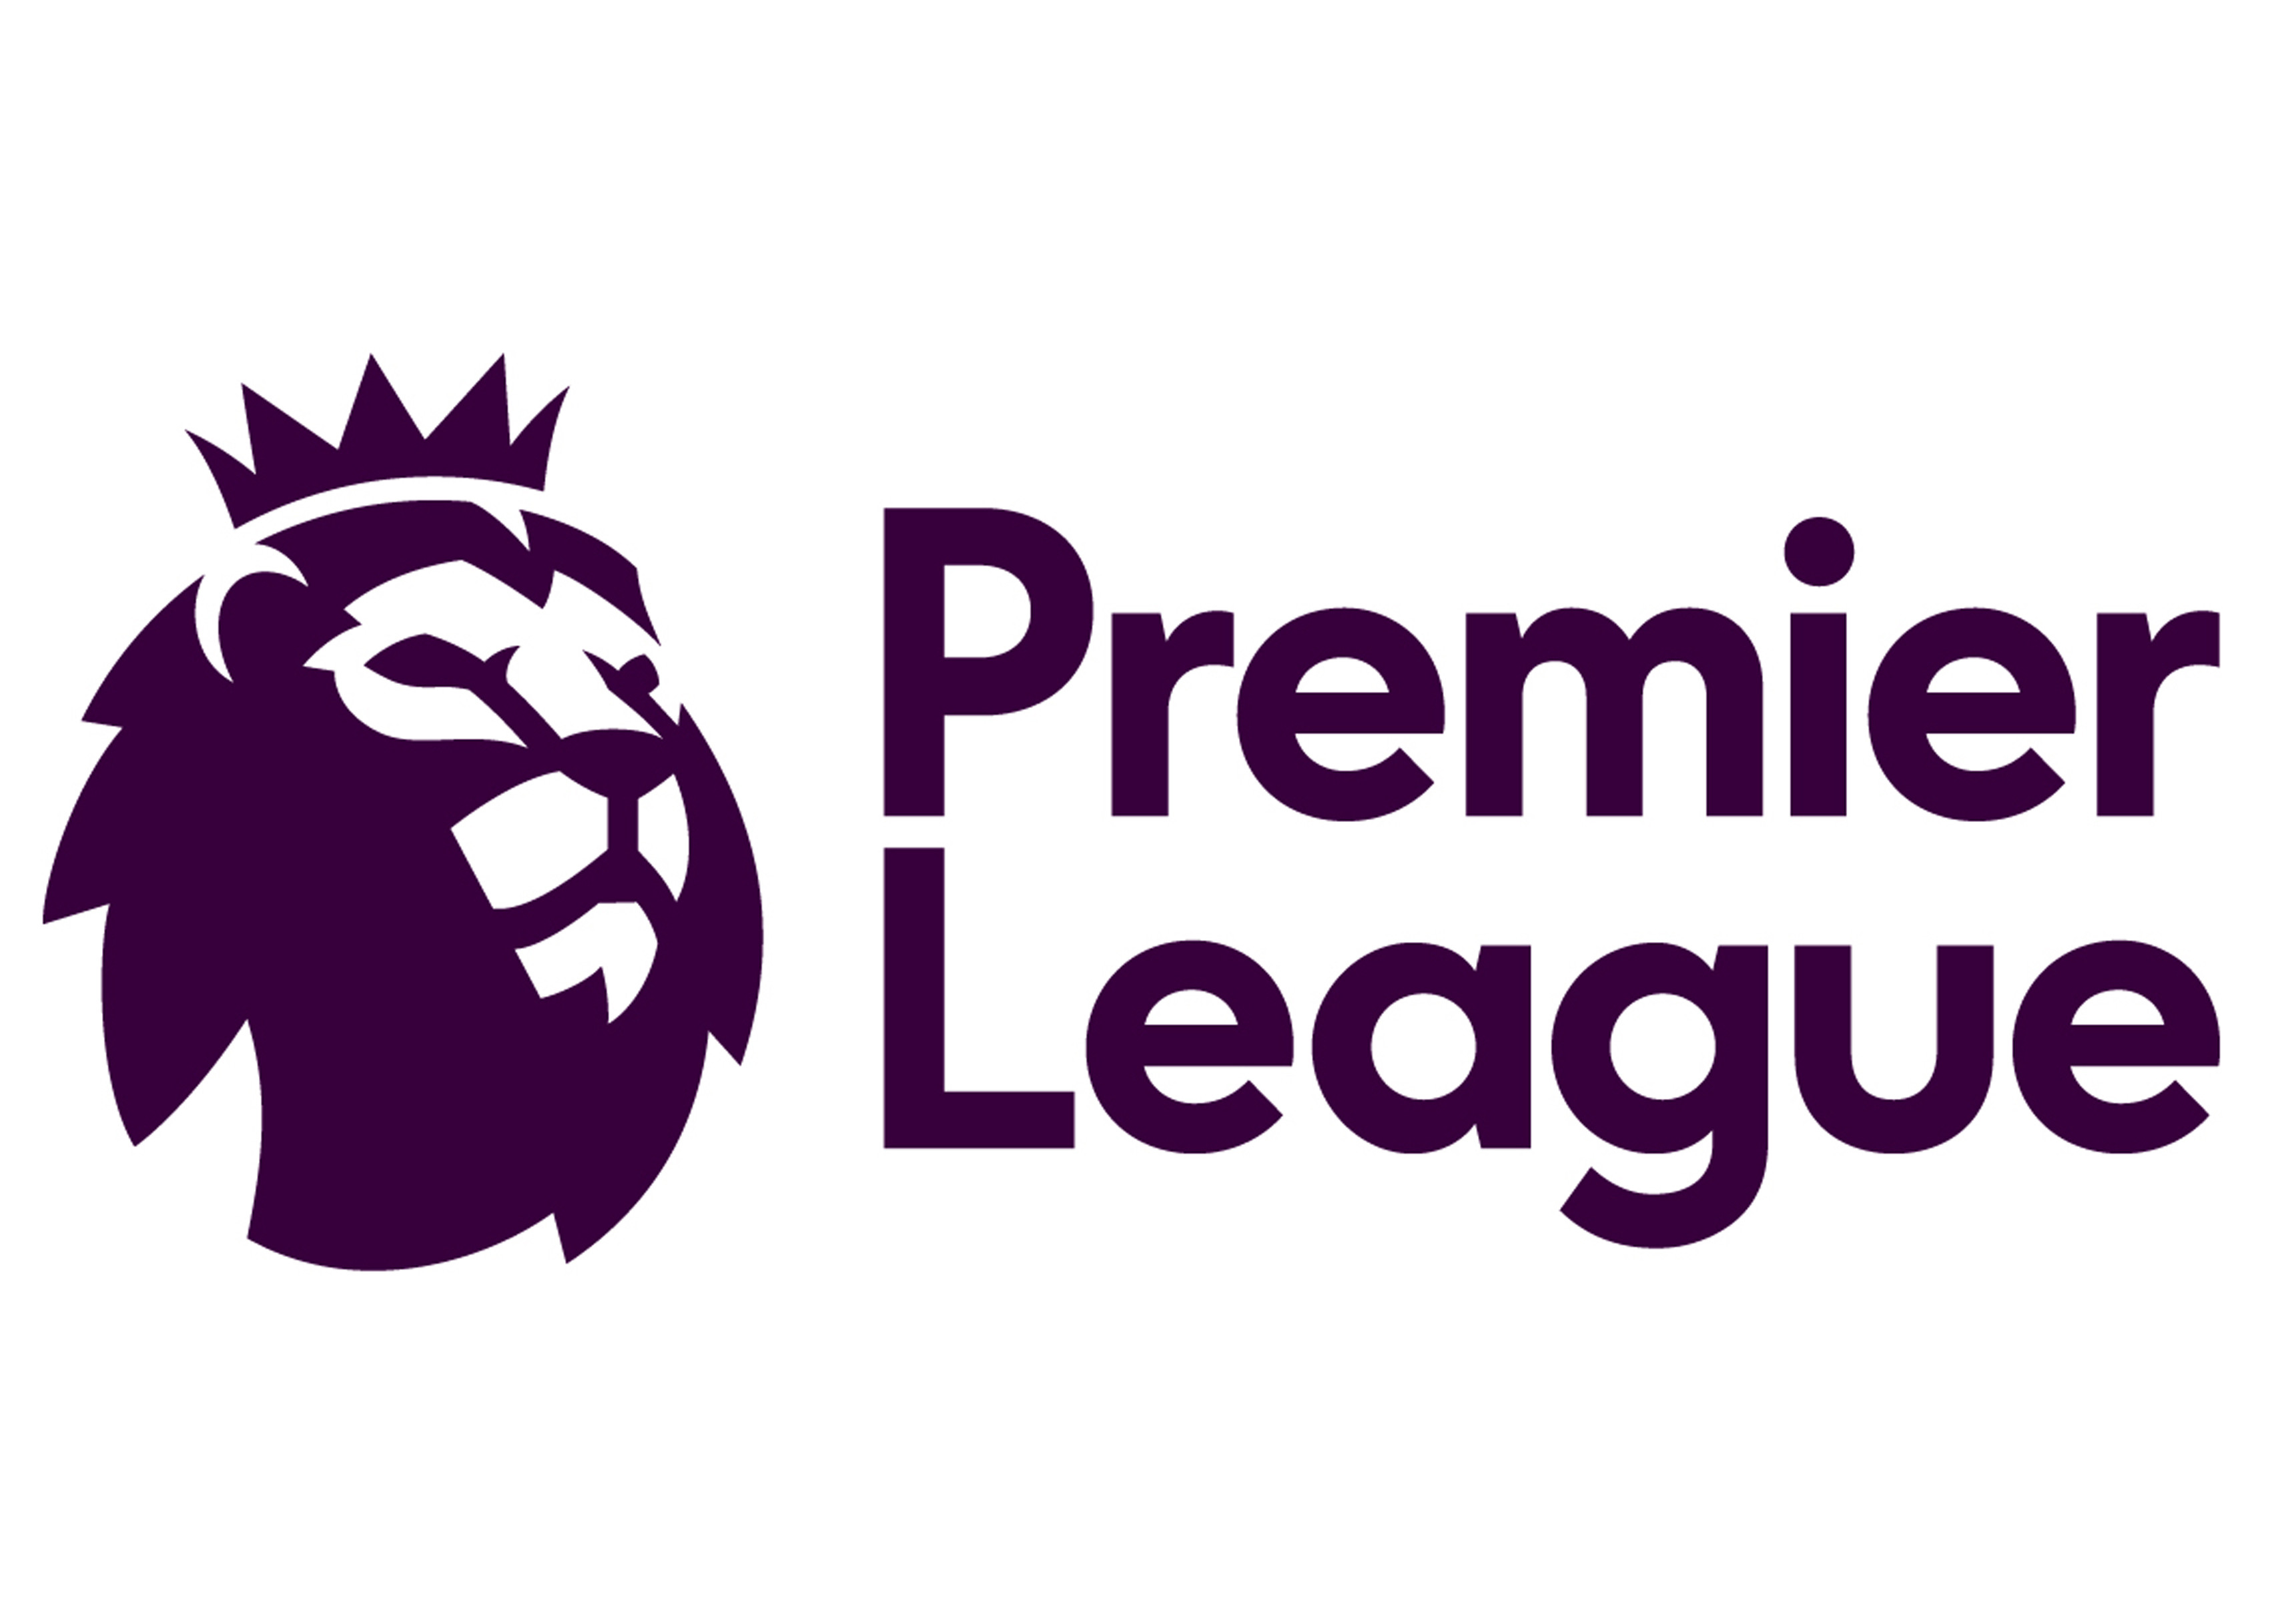 Premier League fixtures for the next three rounds of matches with dates and kick-off times announced